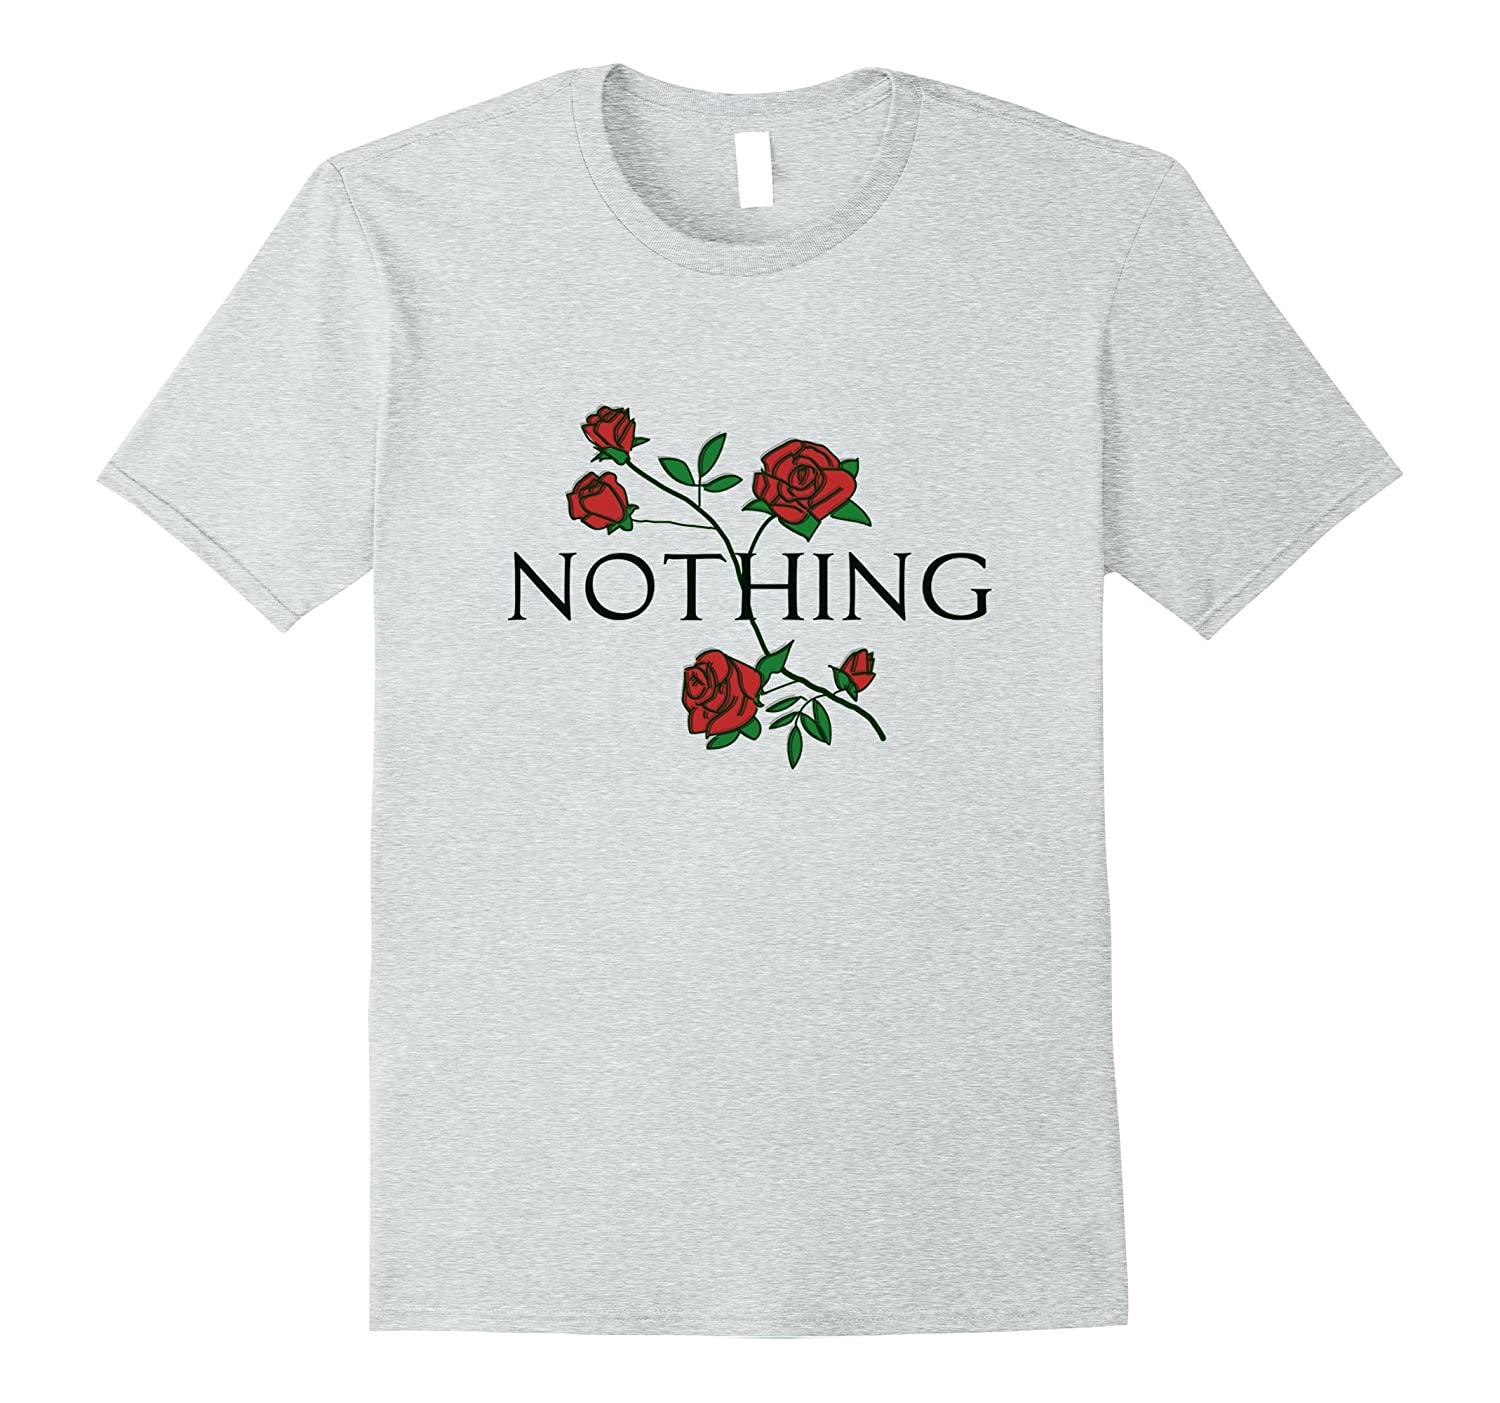 Nothing Rose Floral T-Shirt - Aesthetic Flower Tee-CL